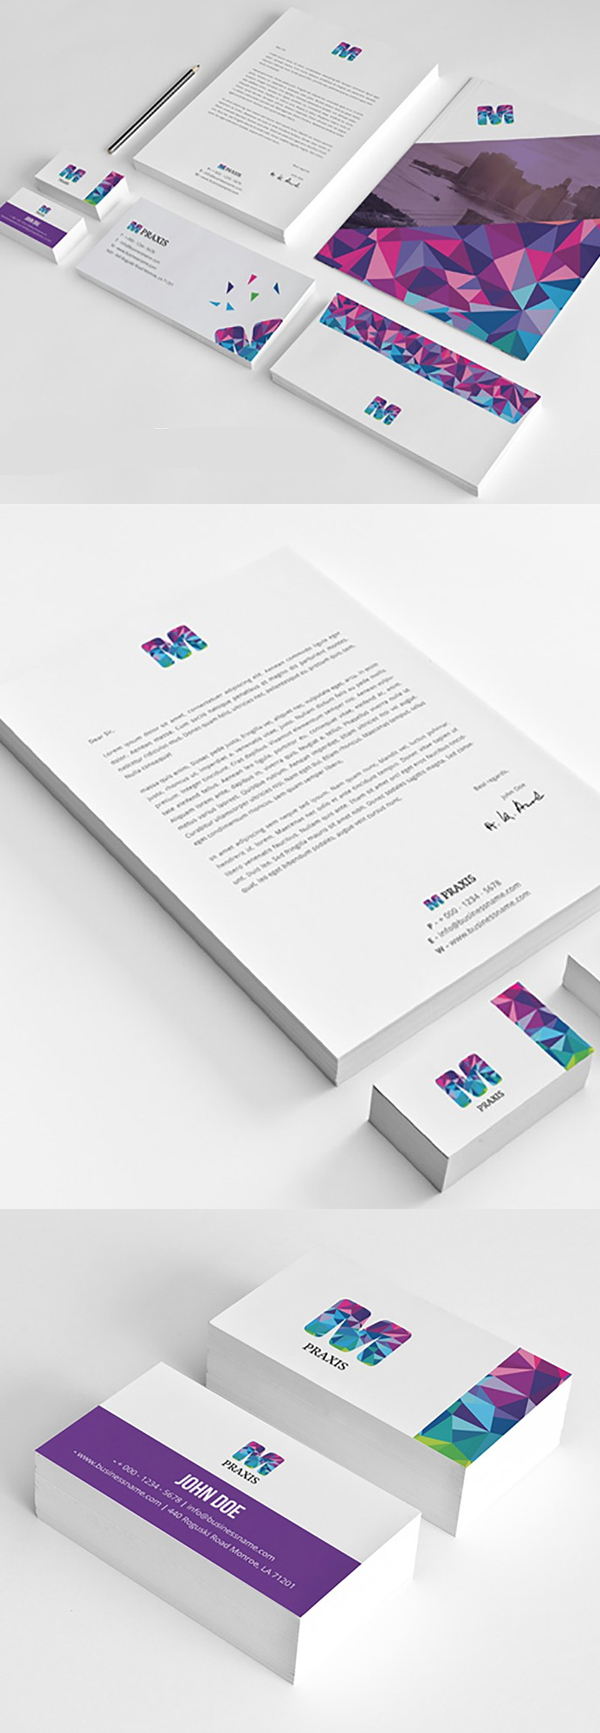 Modern Business Branding / Stationery Templates Design - 6